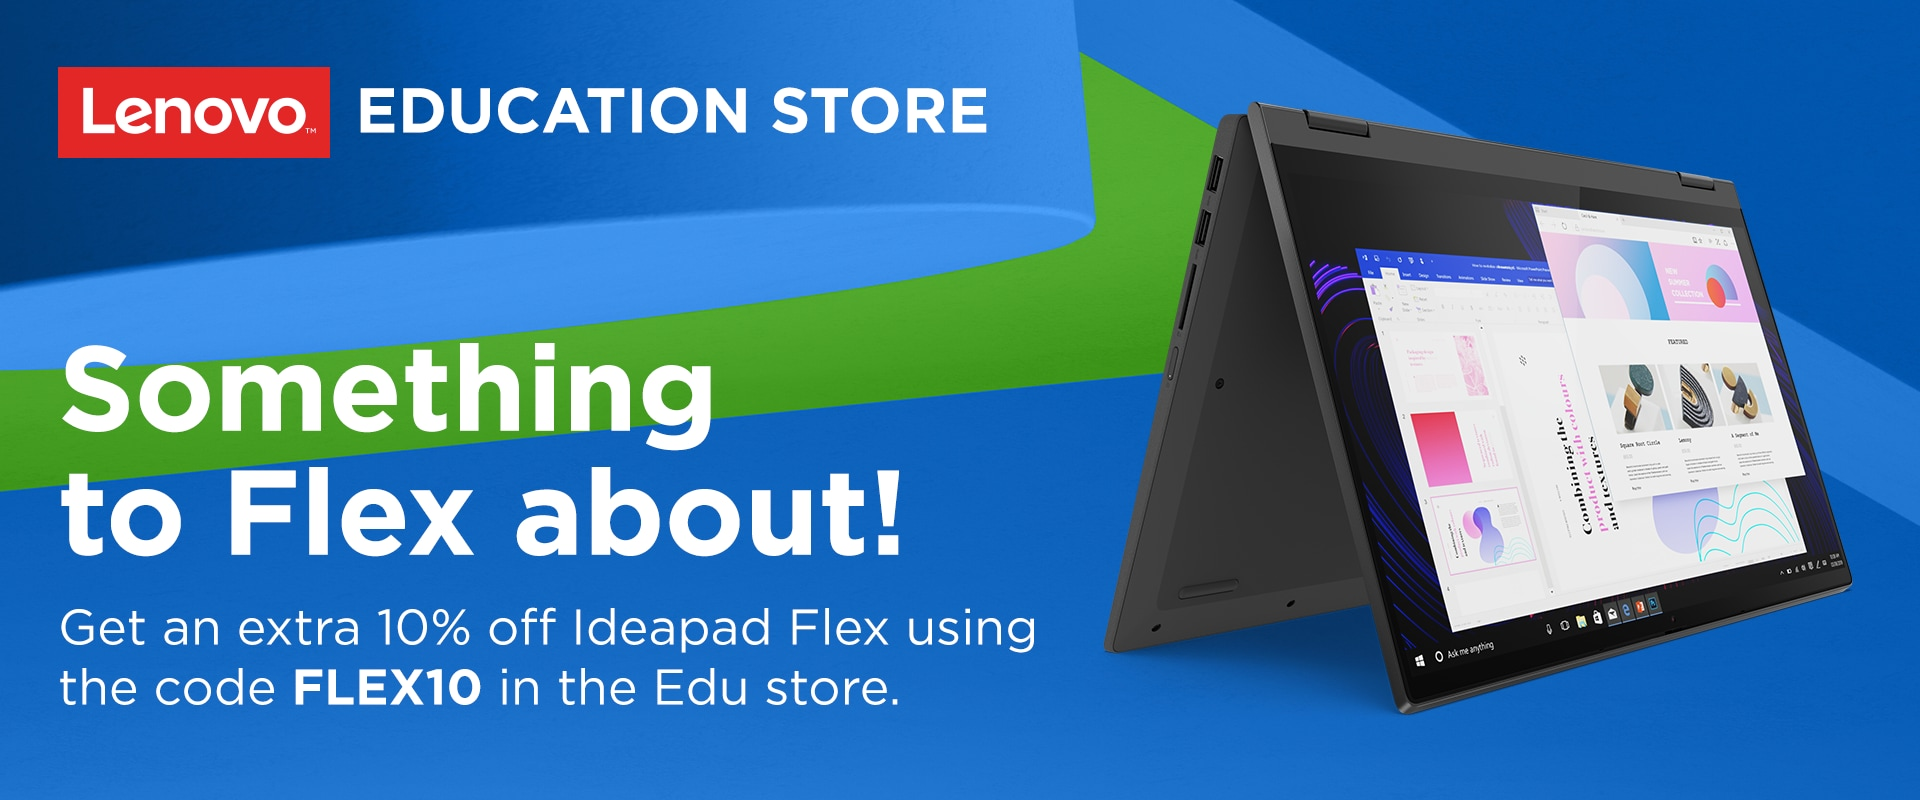 Lenovo education